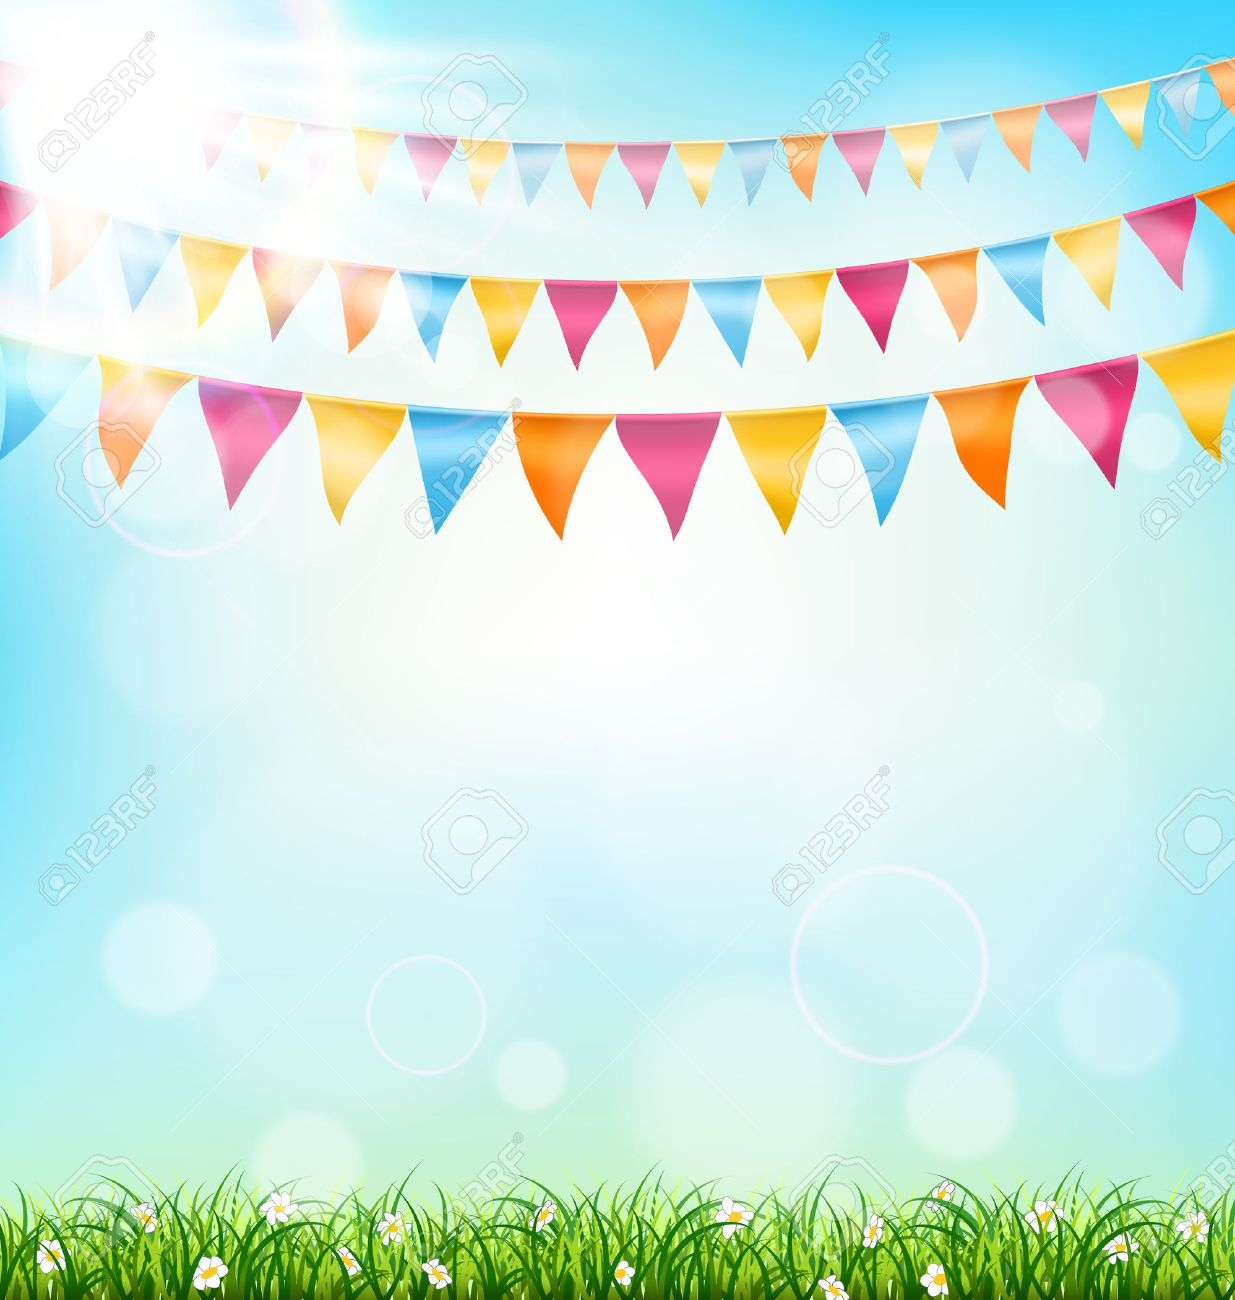 Celebration background with buntings grass and sunlight on sky background - 38977679